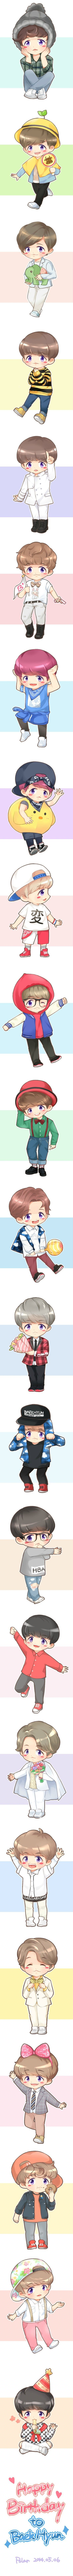 Super Adorable Baek Chibi's!   credit: to it's rightful owner, please see logo on pic (if have)